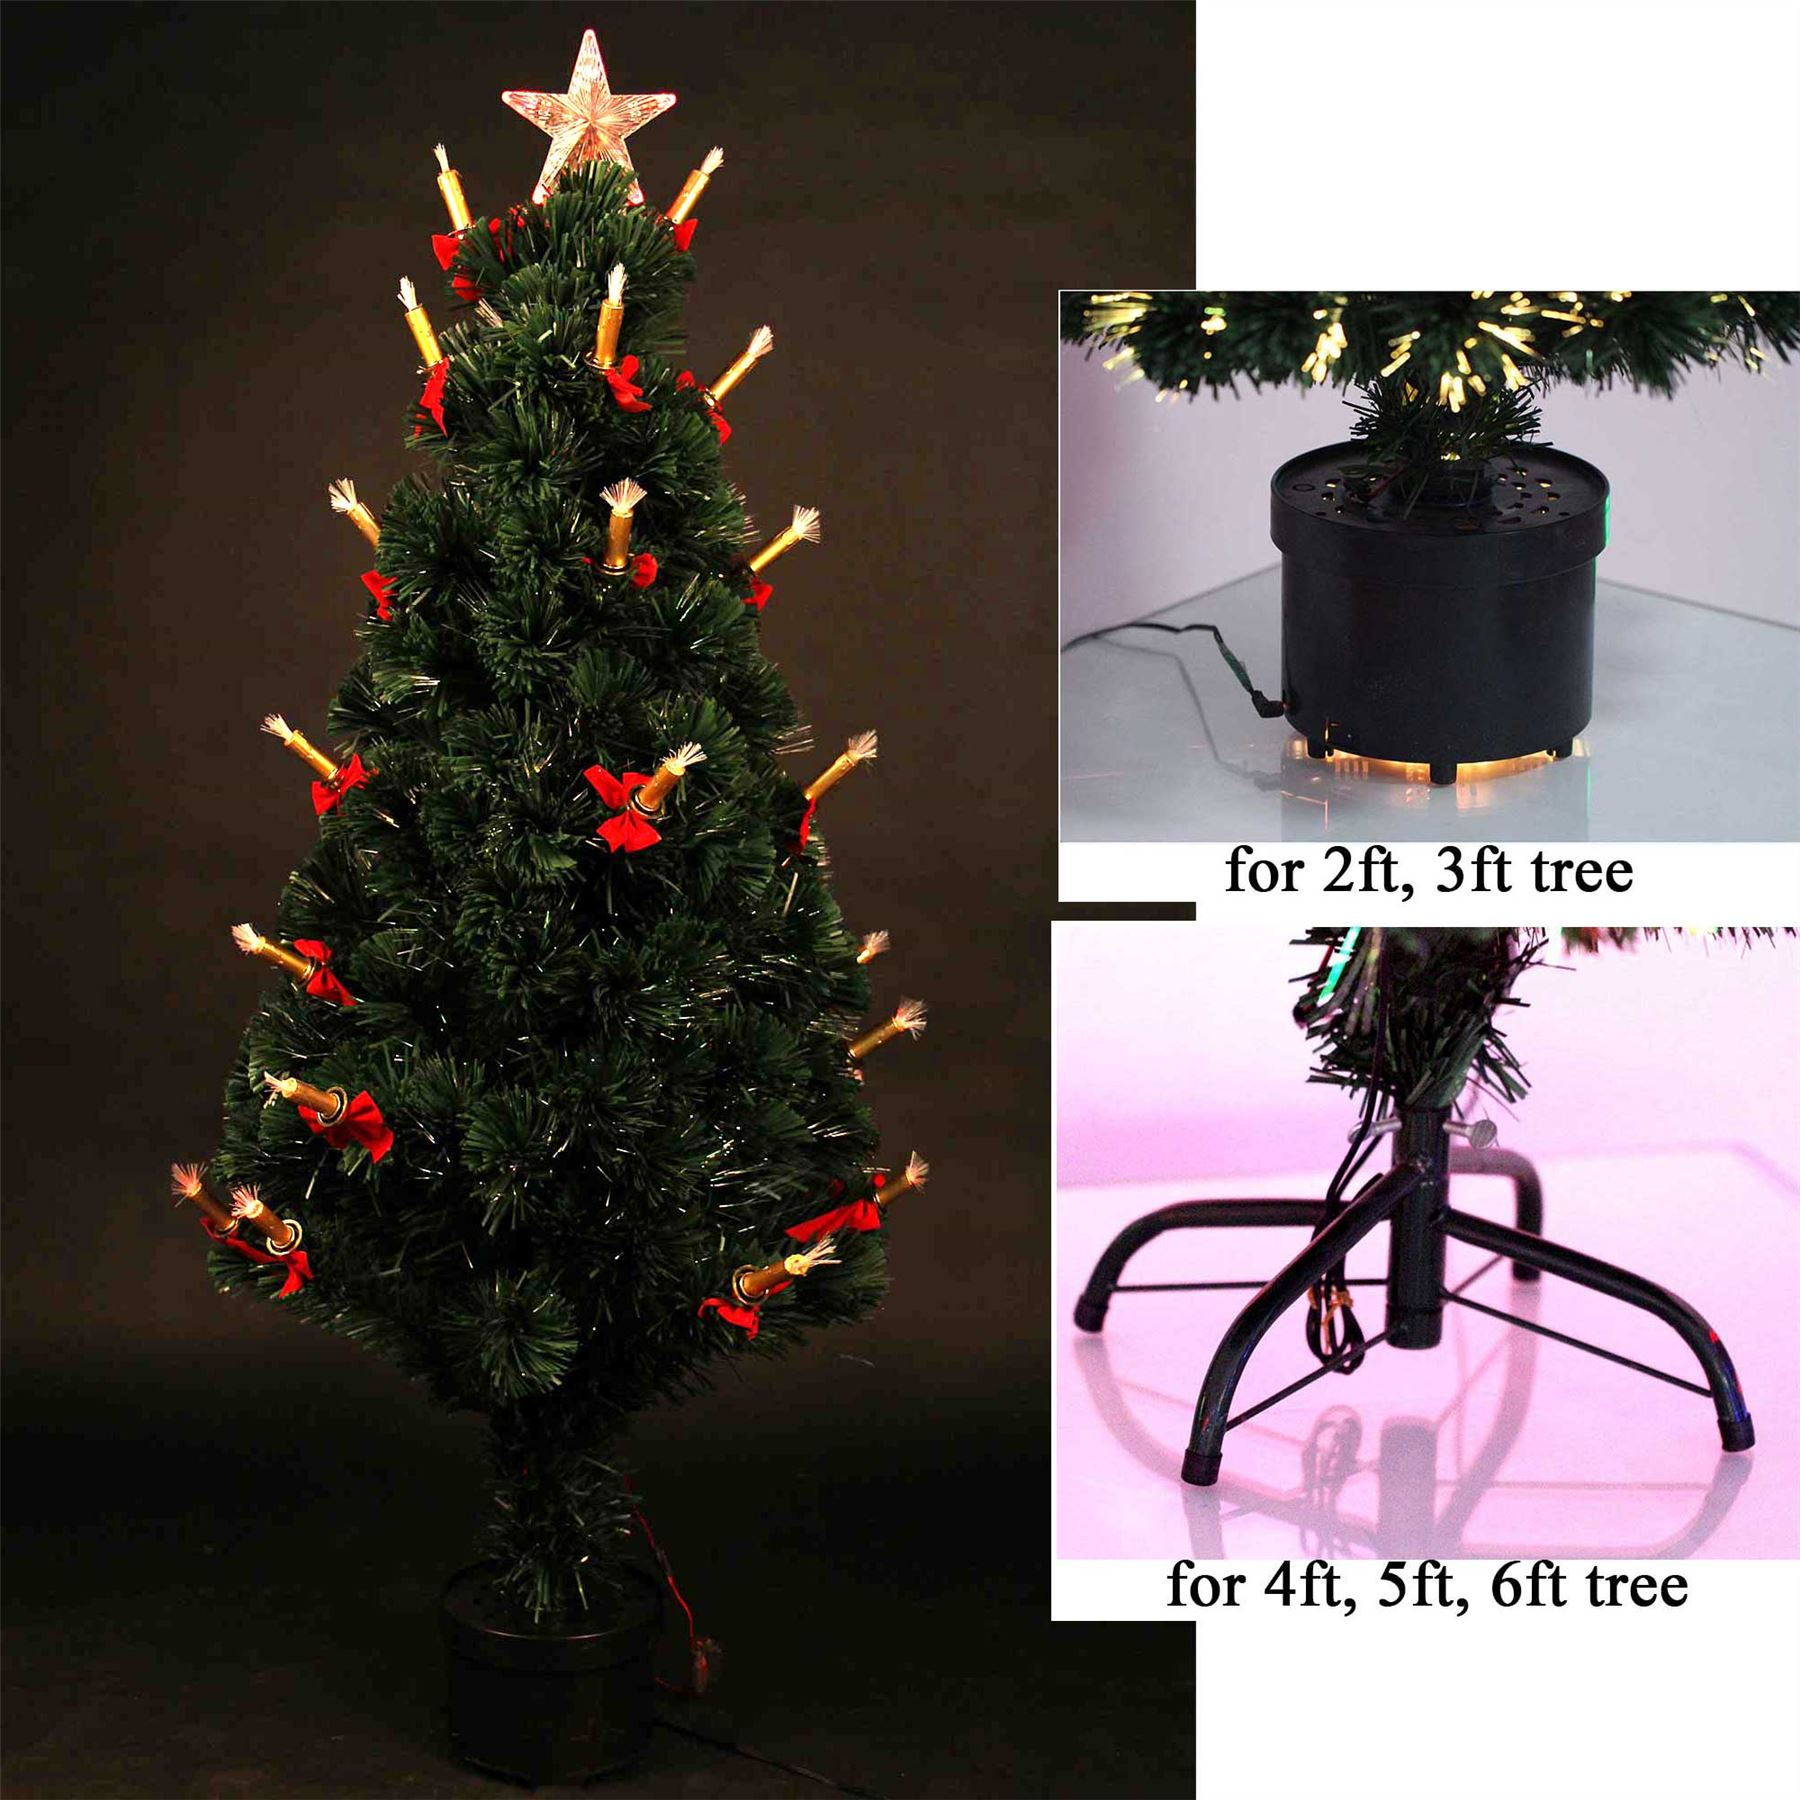 6ft led fibre optic christmas tree pre lit xmas decoration with candle bow walmartcom - 6 Ft Lighted Christmas Tree